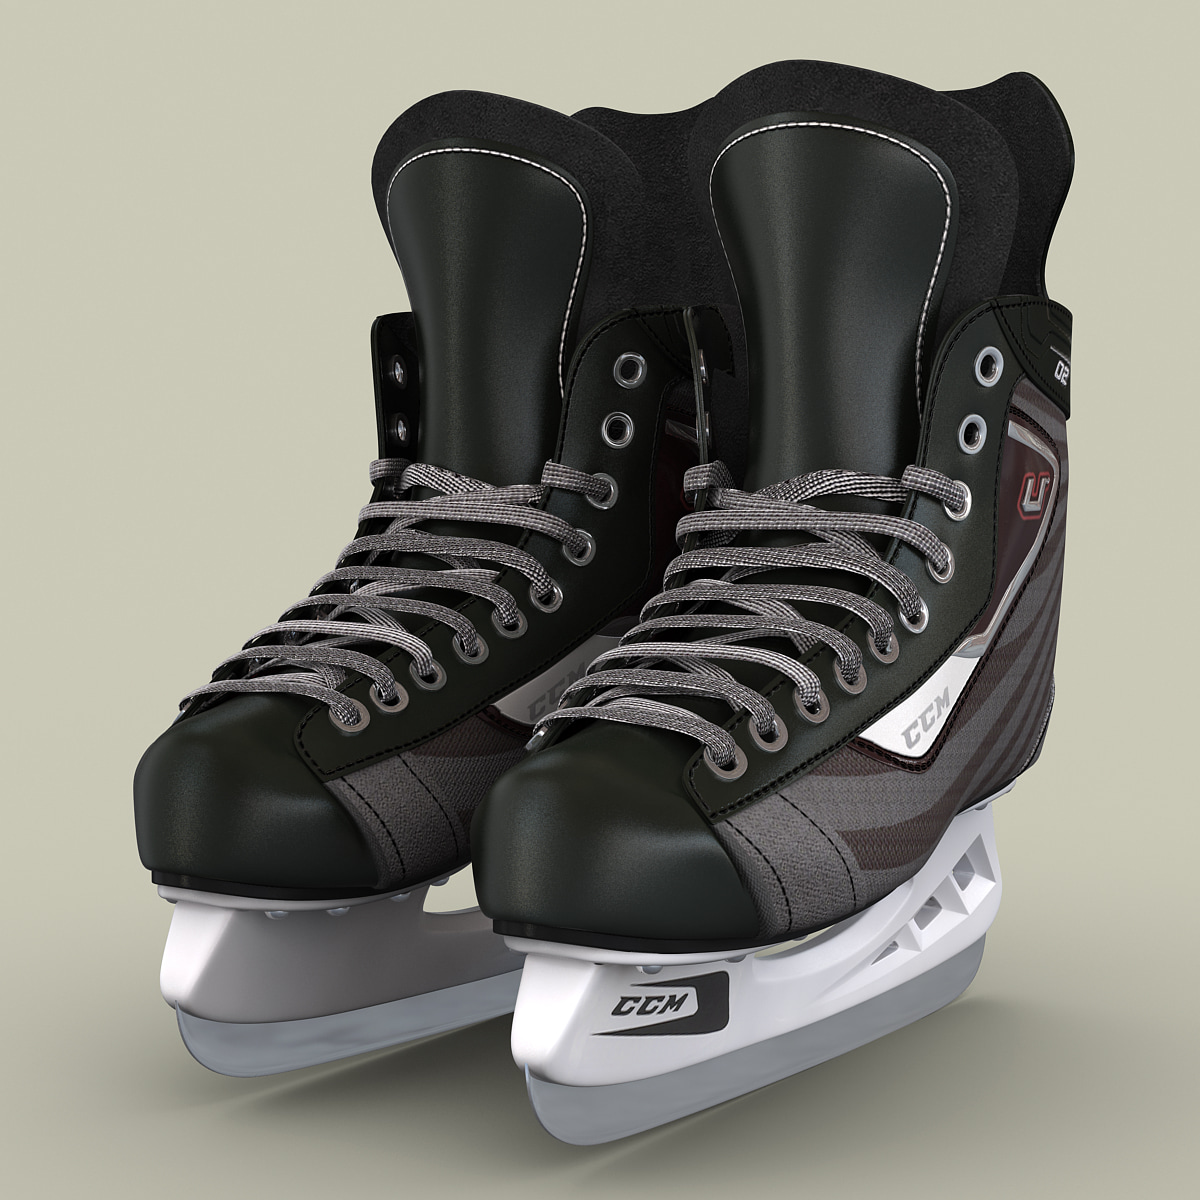 Ice_Hockey_Skates_CCM_001.jpg